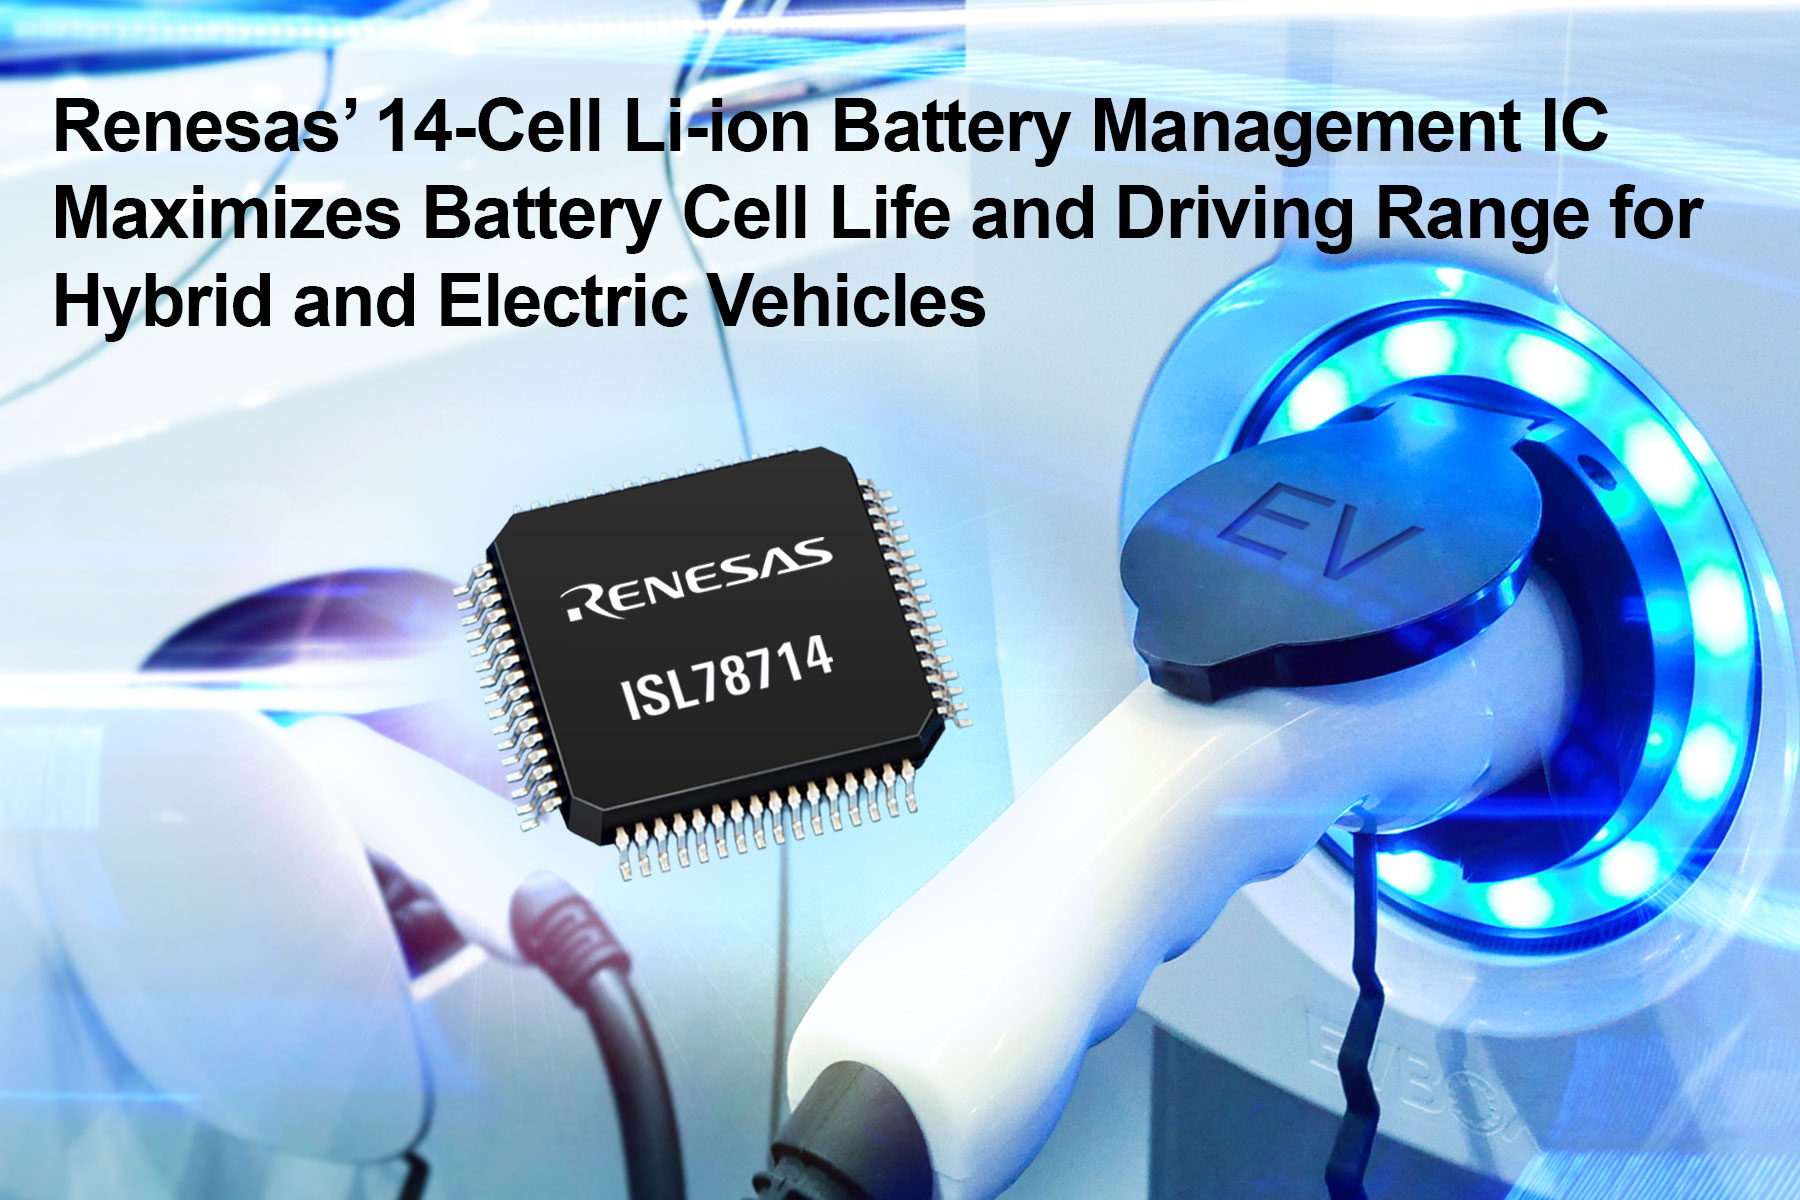 Battery Management IC Maximizes Driving Range for EVs